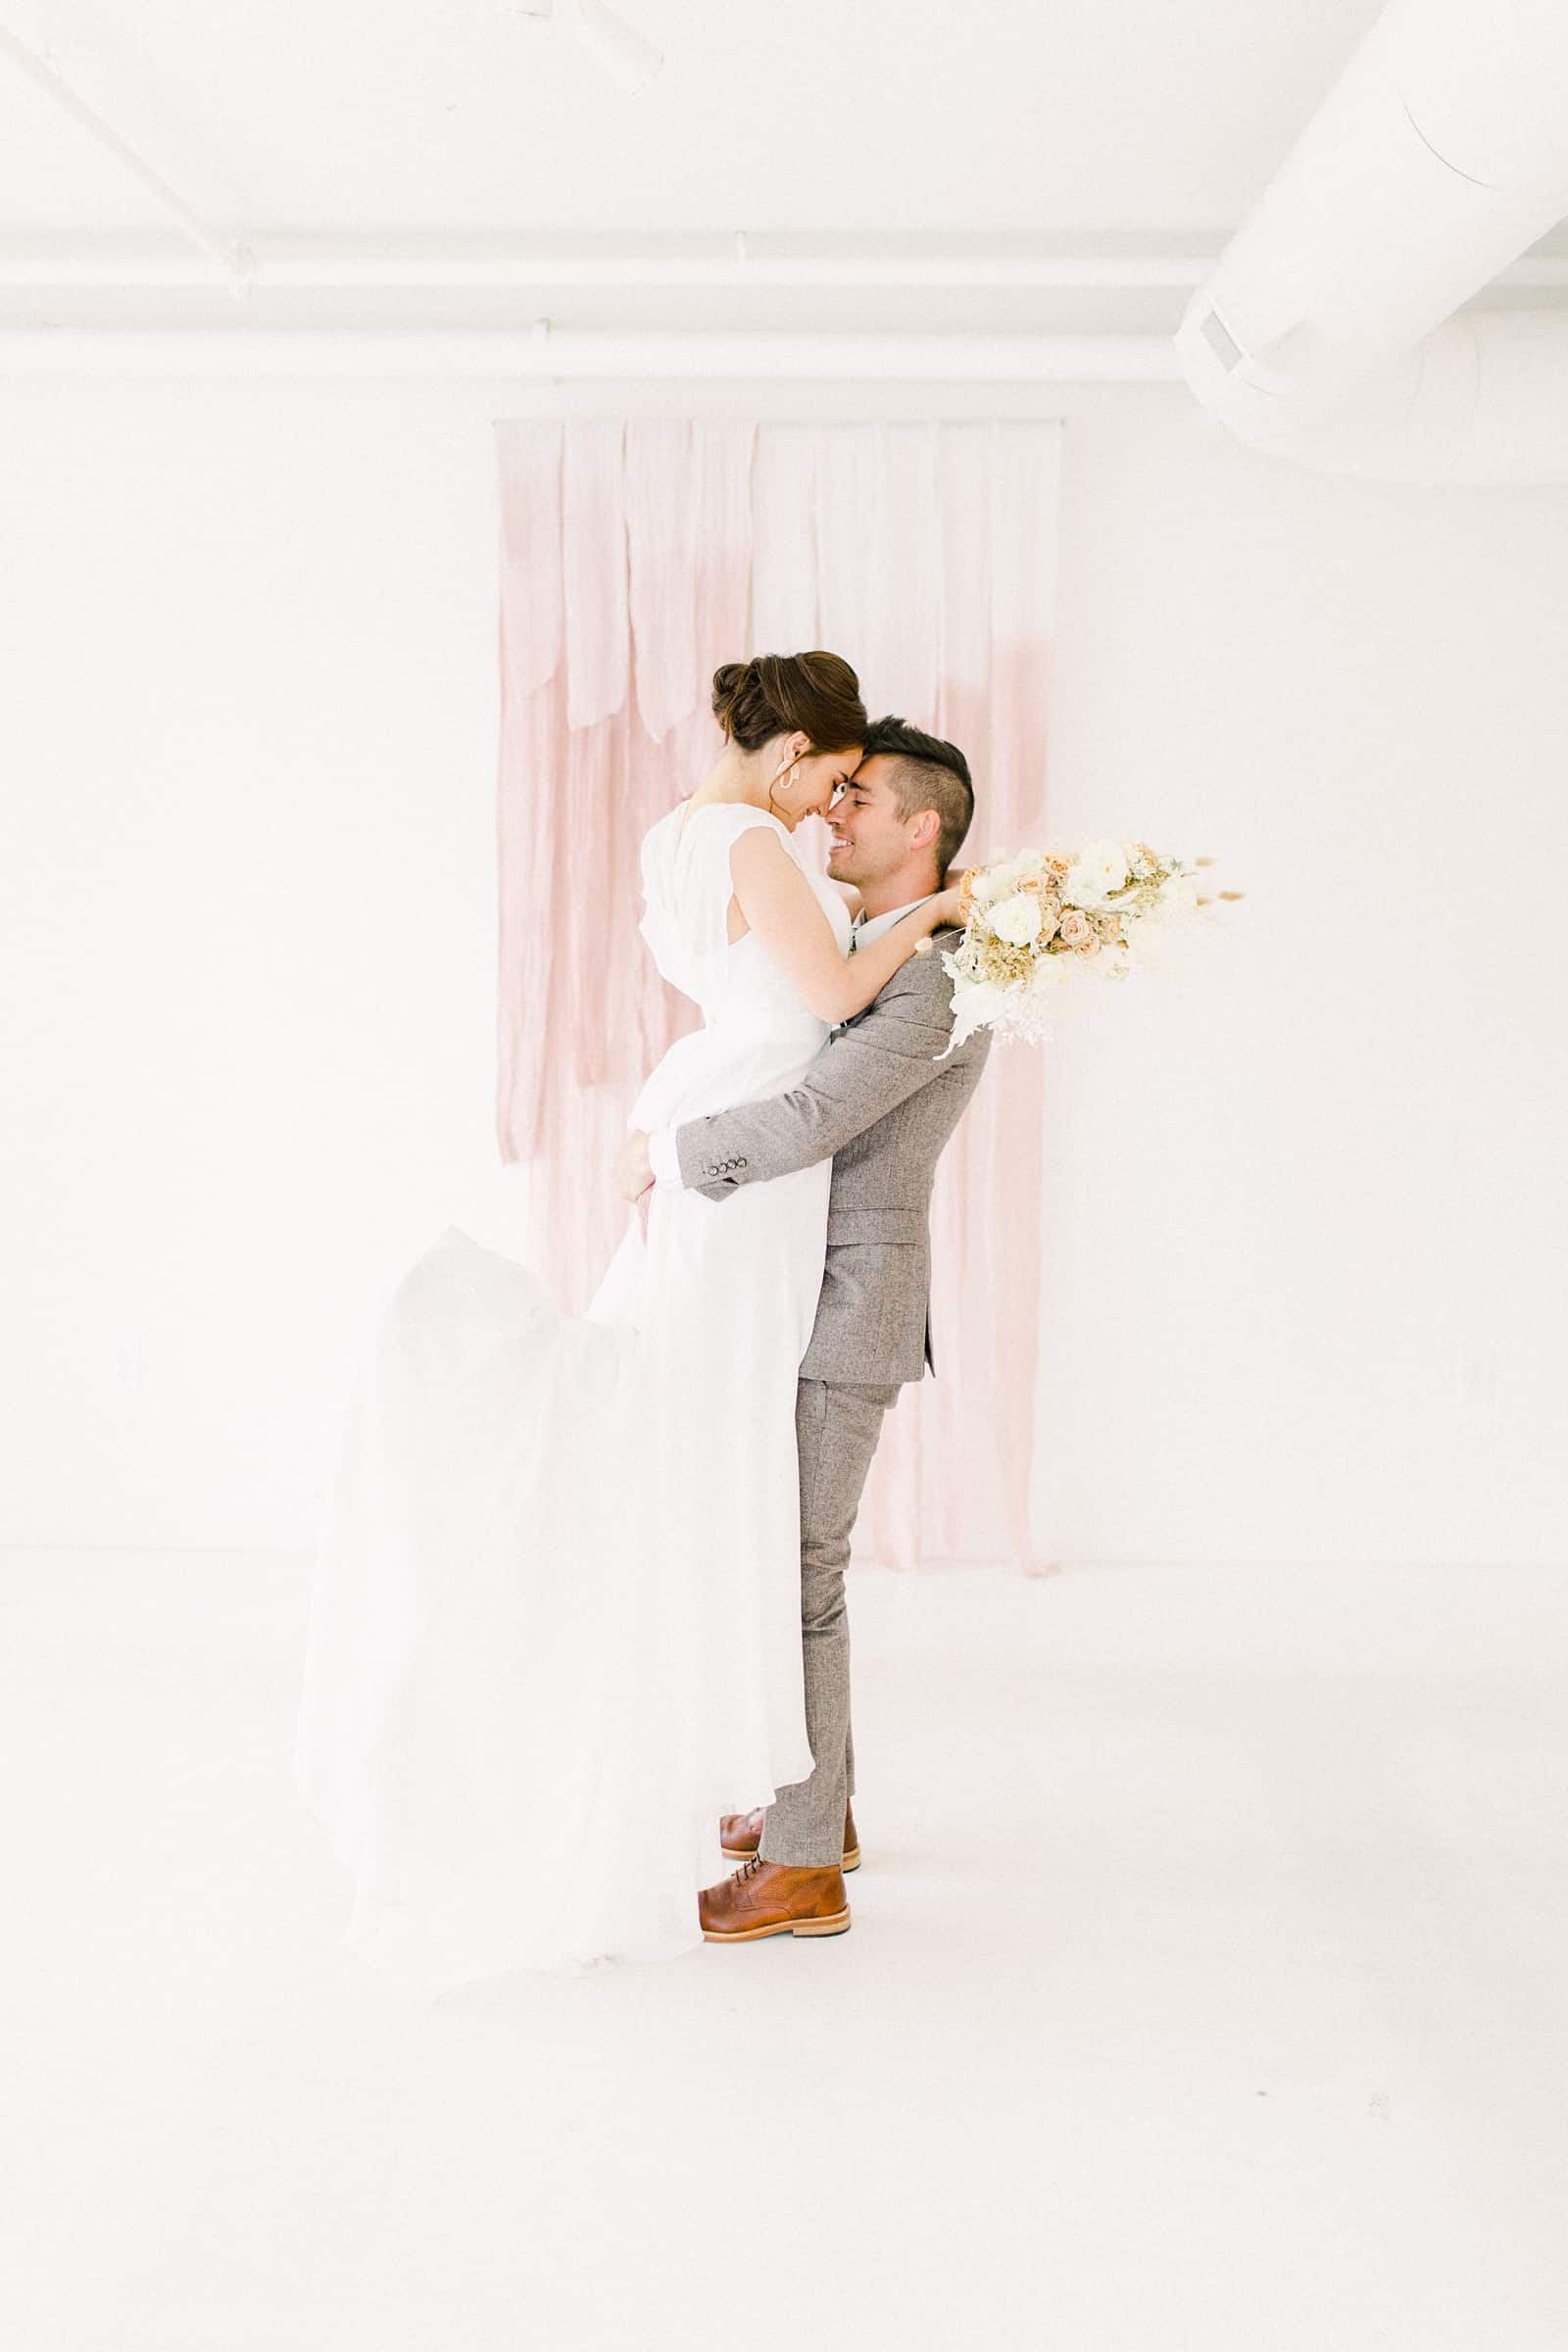 Groom lifts bride after ceremony in front of blush pink painted ombre watercolor backdrop